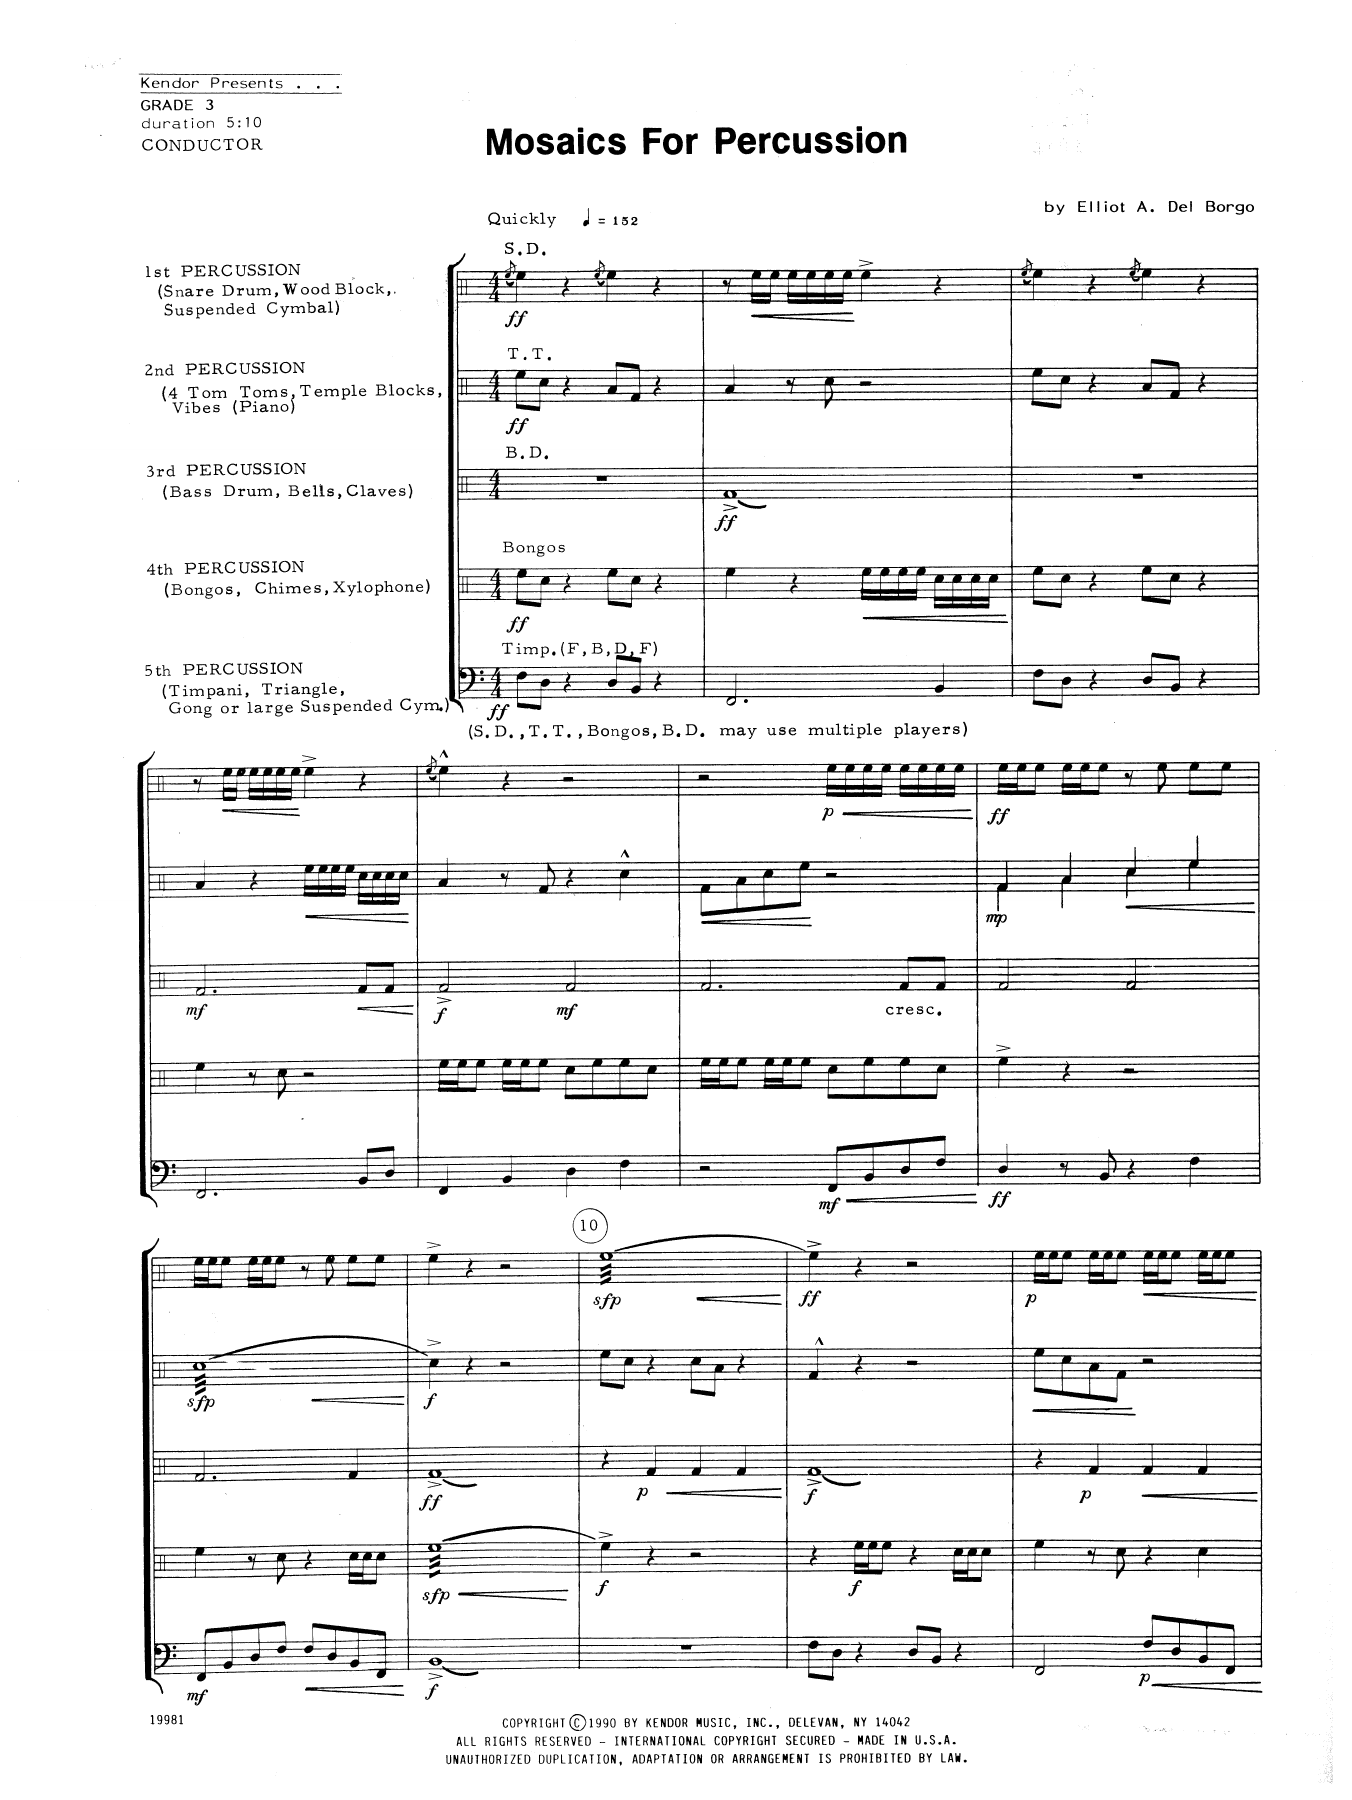 Mosaics For Percussion (COMPLETE) sheet music for percussions by Elliot A. Del Borgo. Score Image Preview.